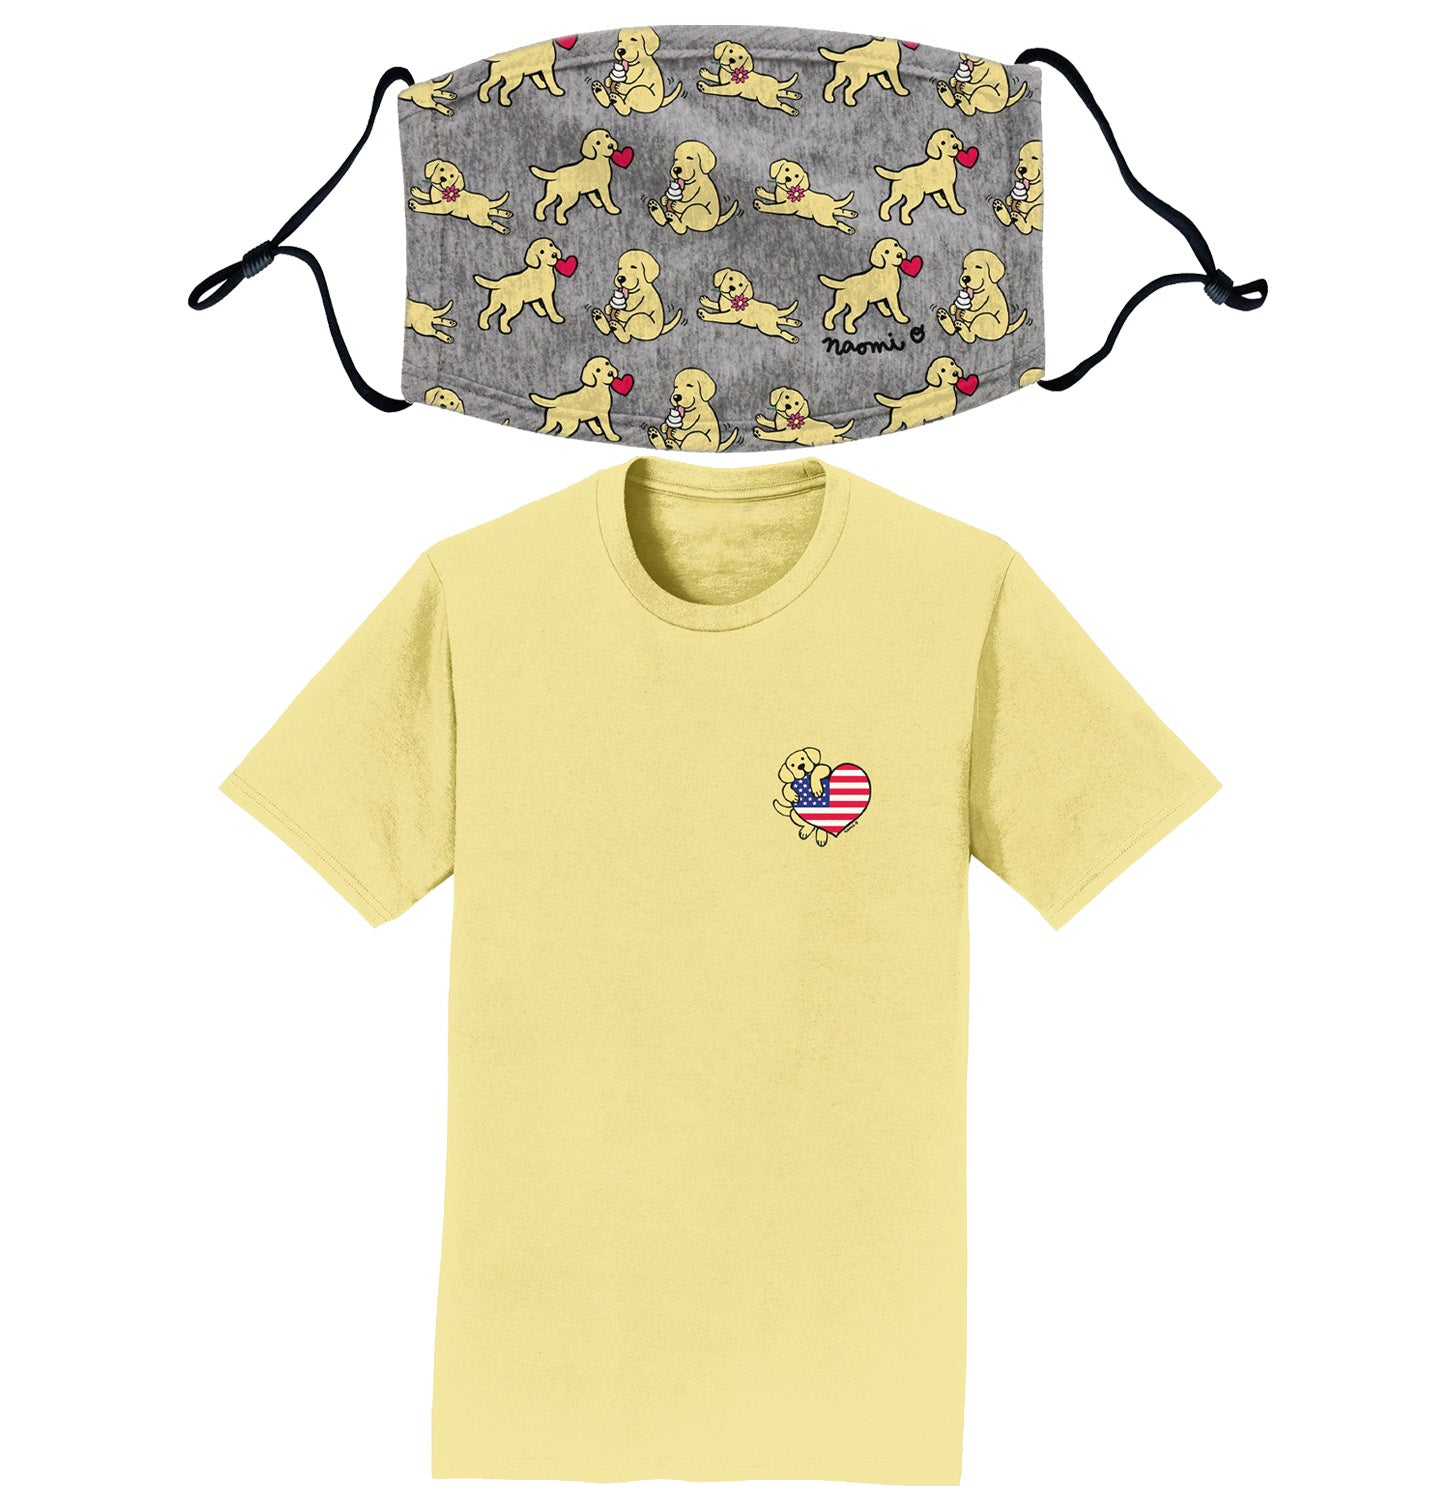 Yellow Lab Puppies - T-Shirt/Mask Combo Pack